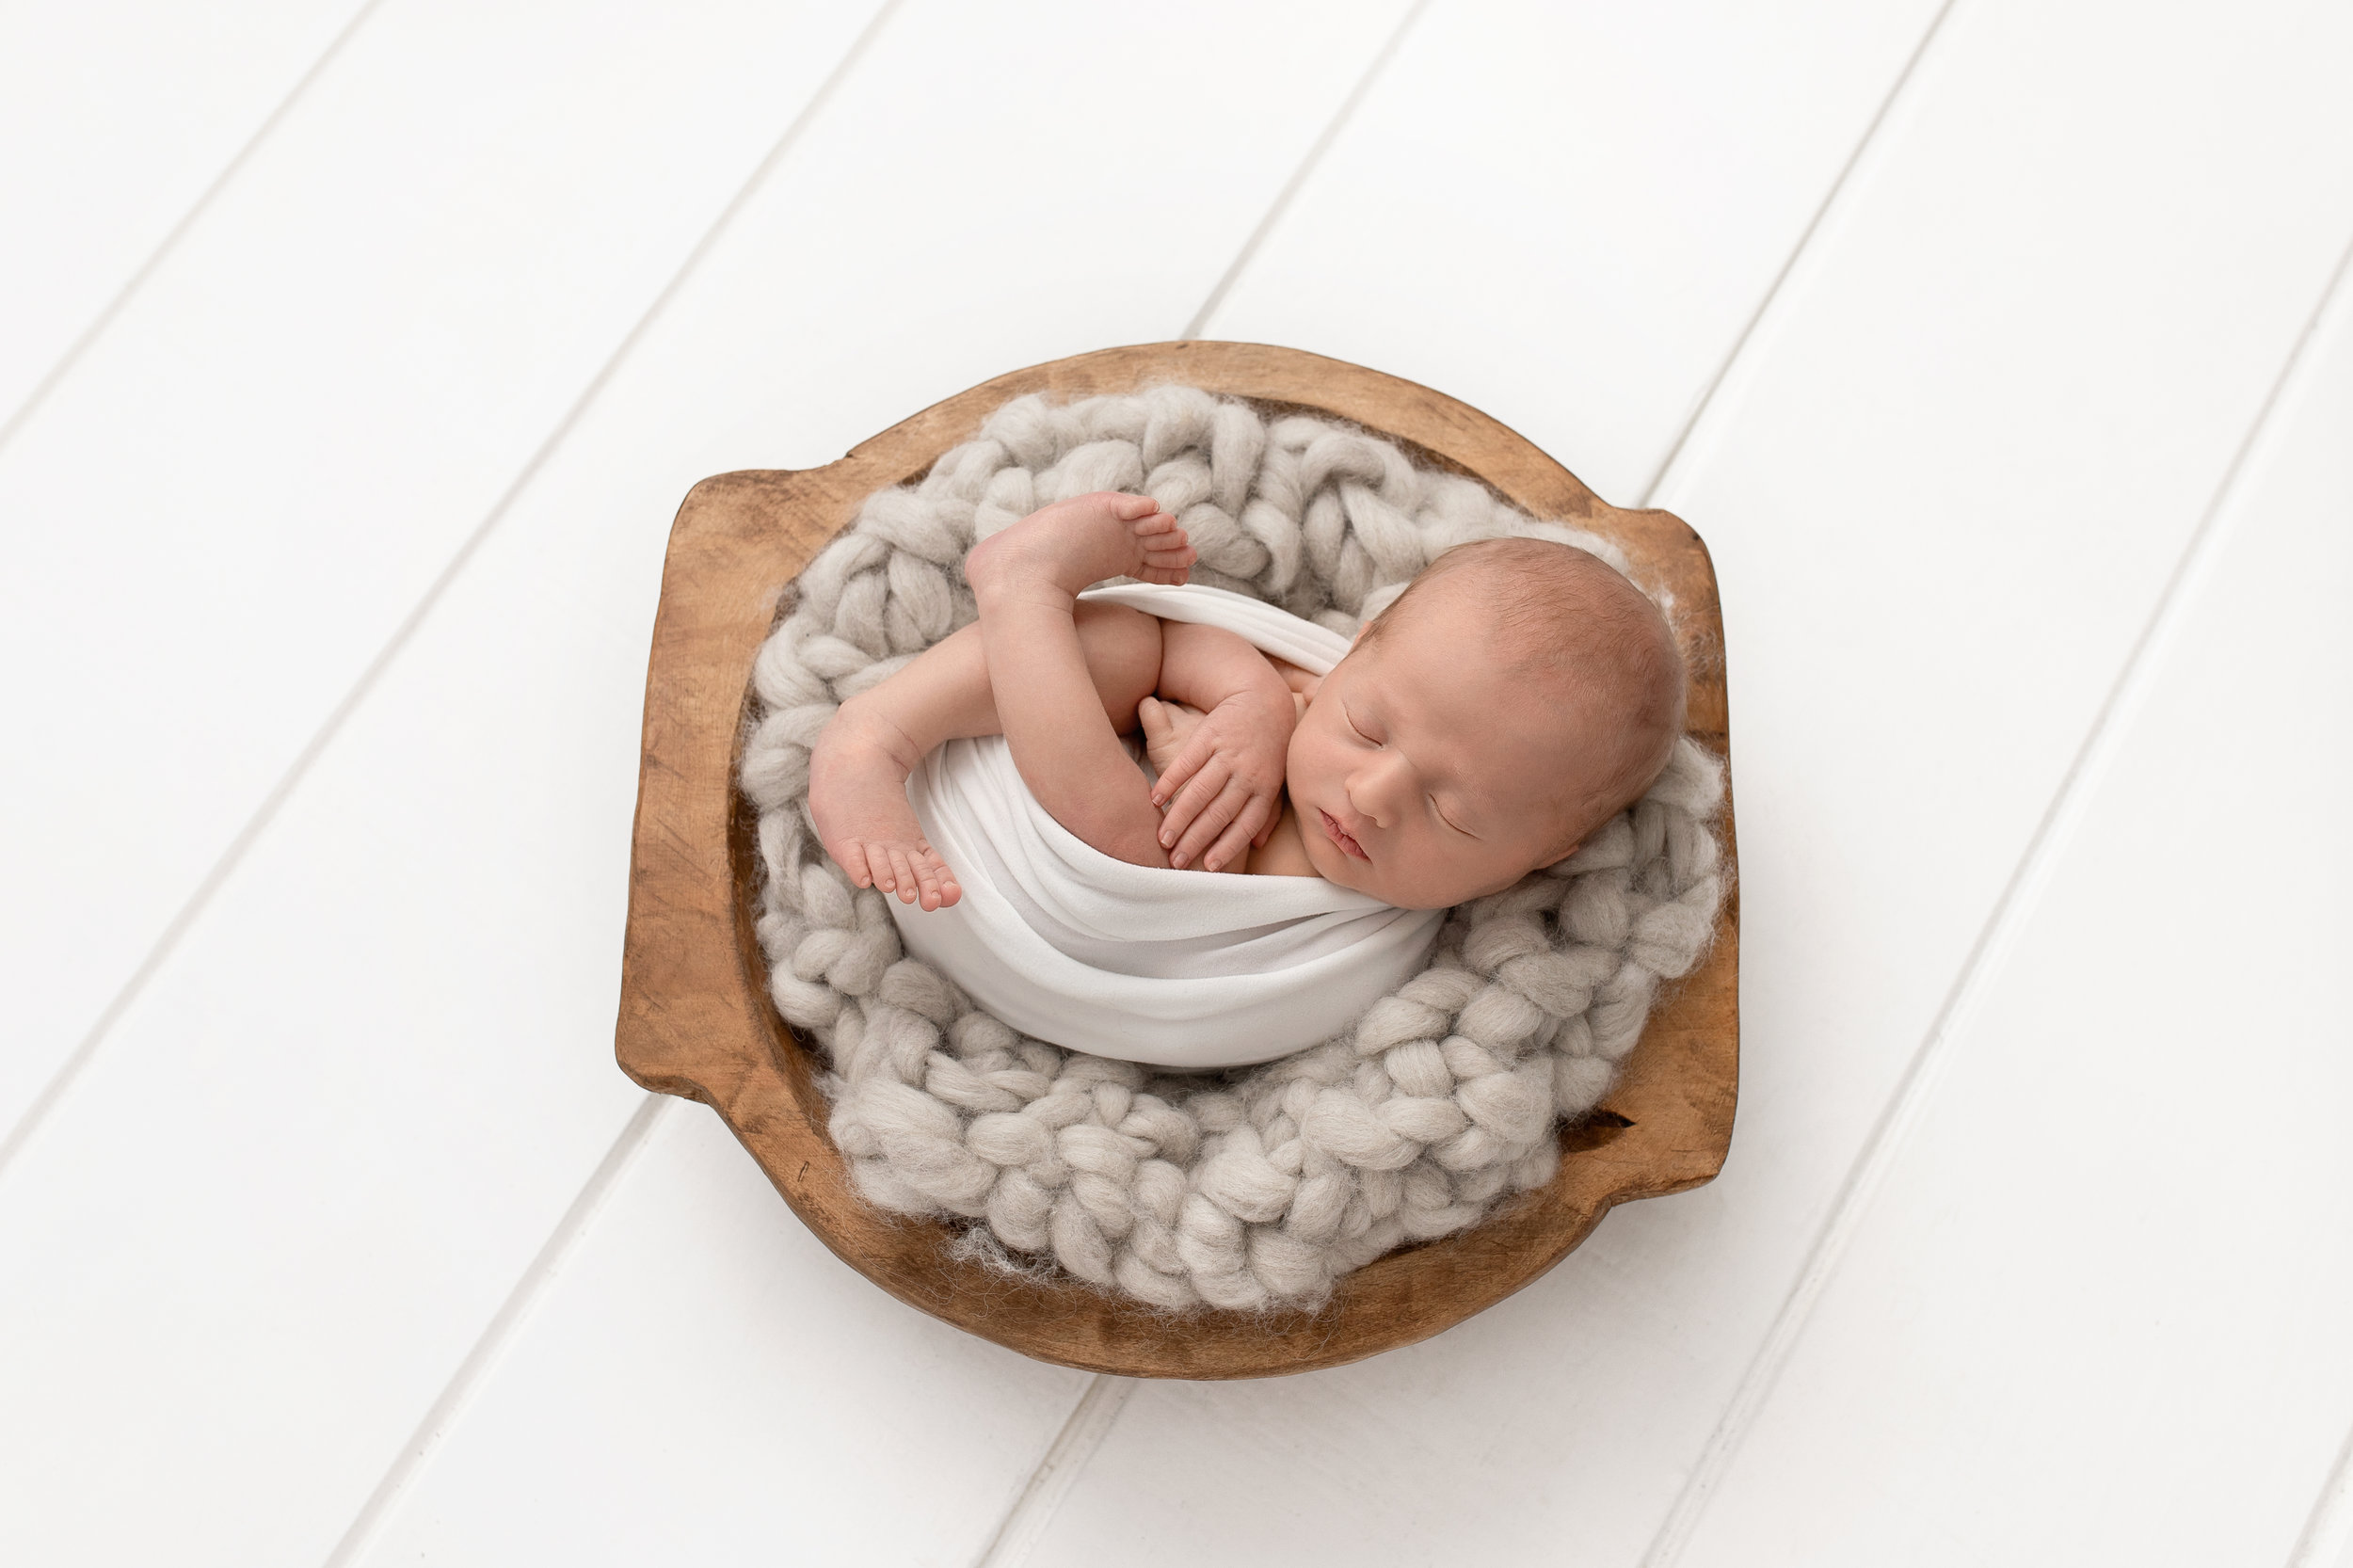 newborn photography edmonton best baby photo session st-albert photoshoot family portrait